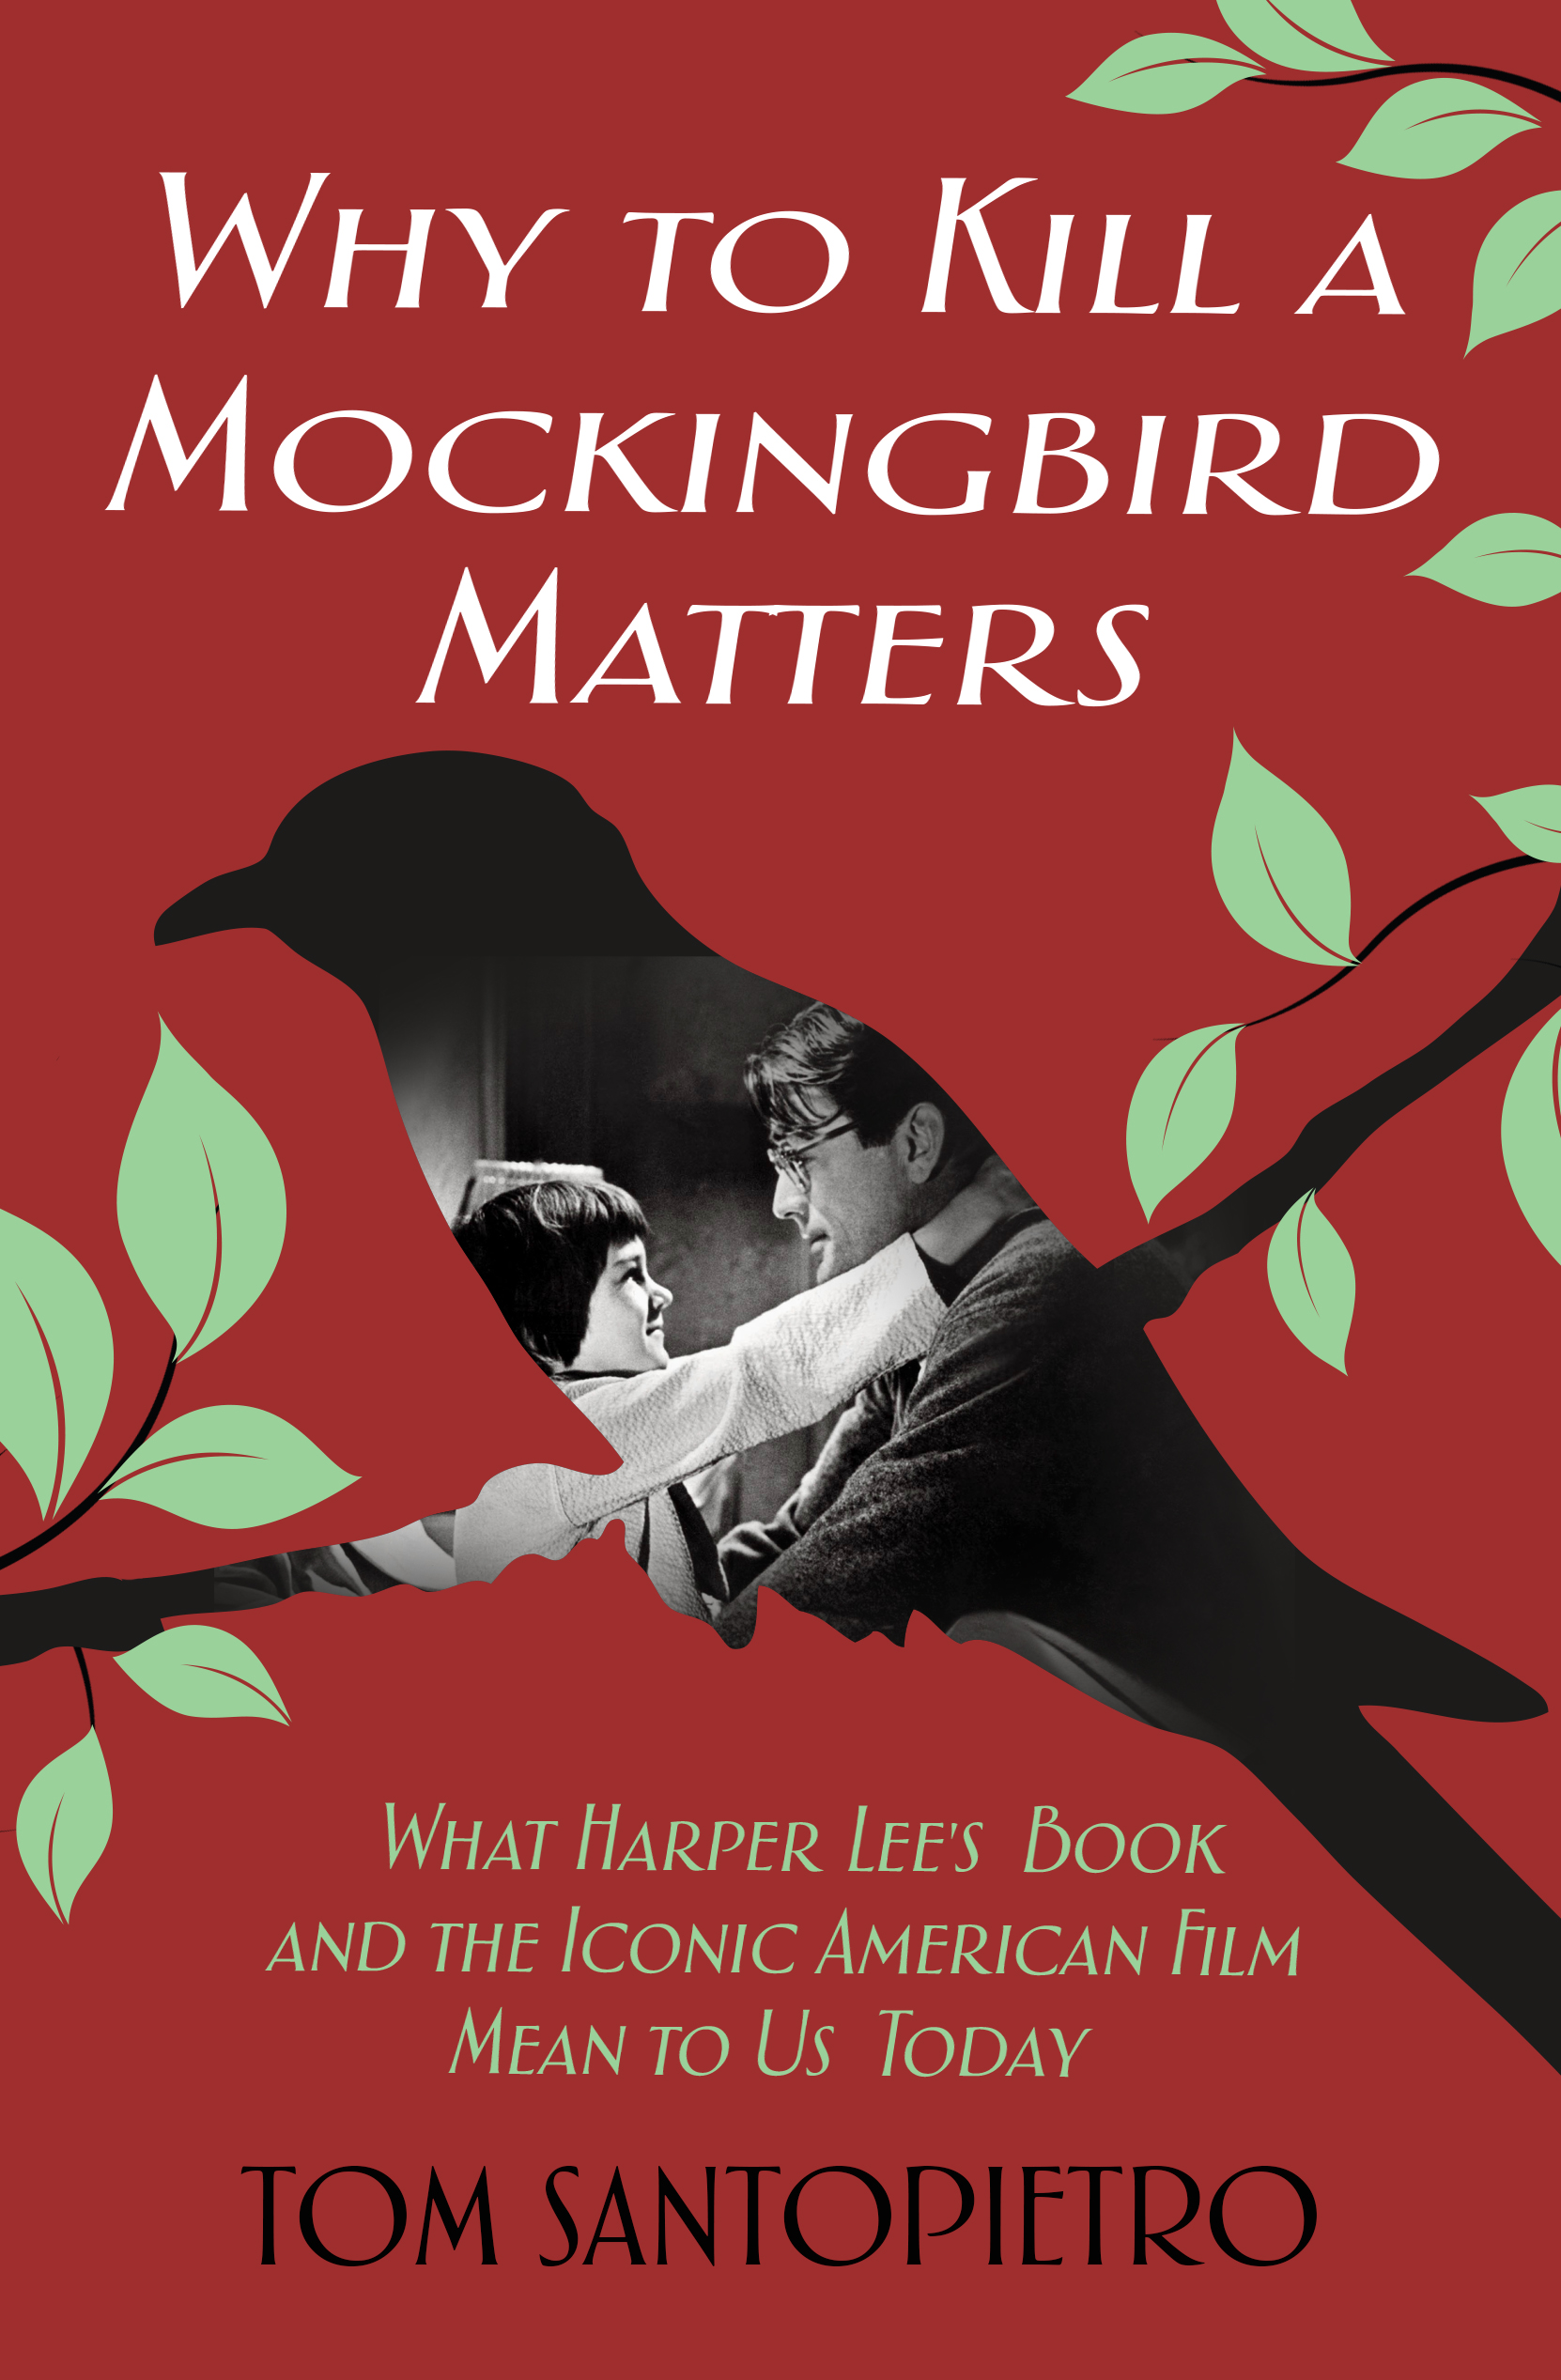 Why To Kill a Mockingbird Matters